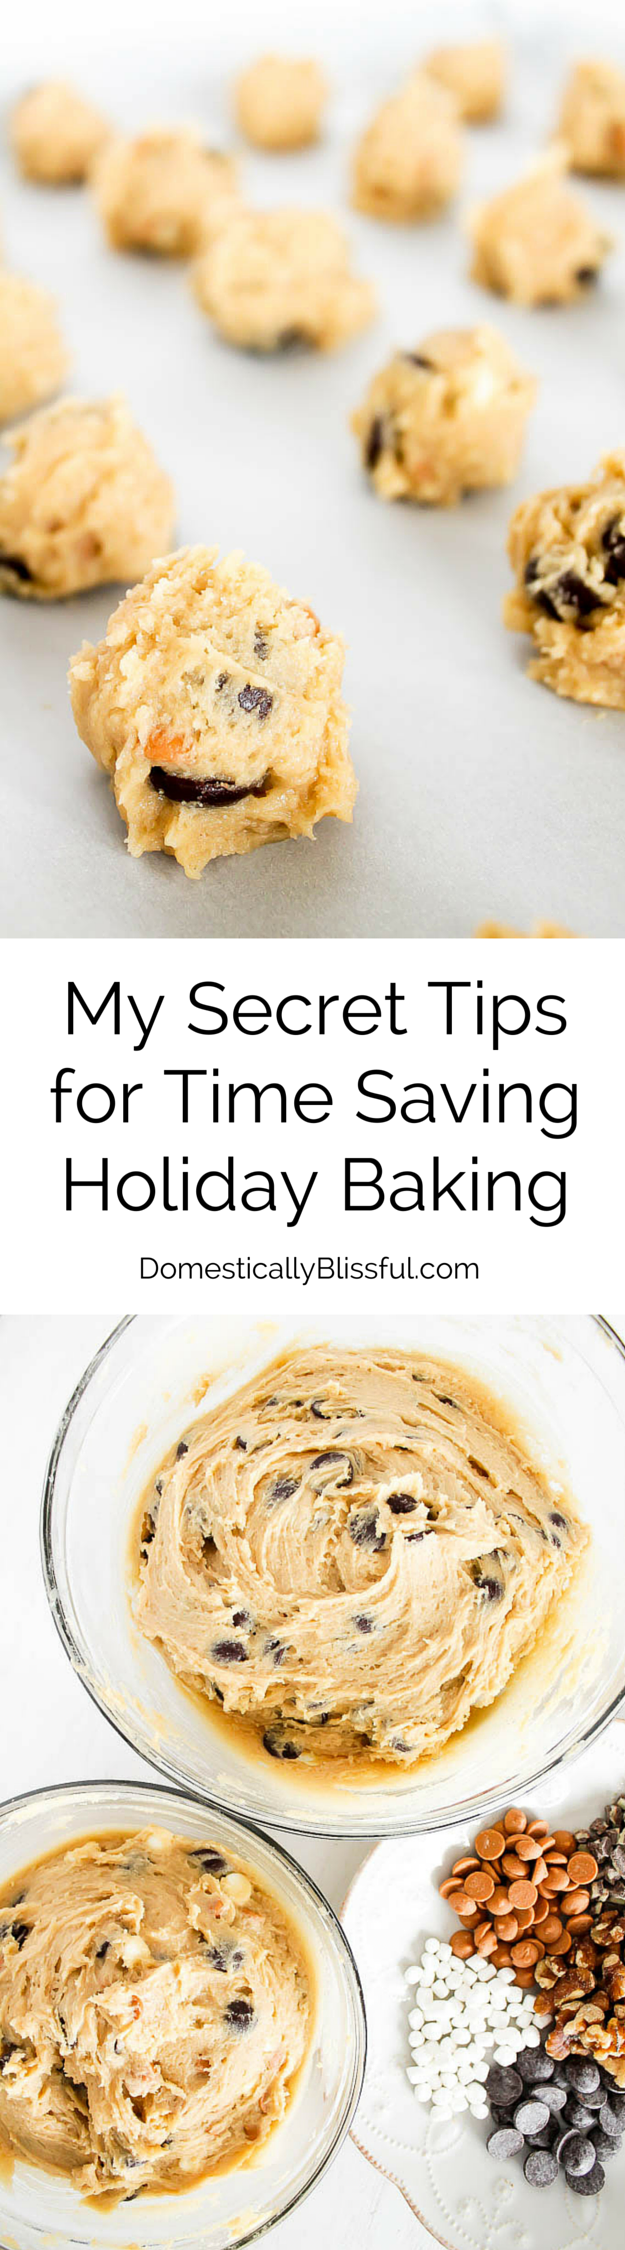 In My Secret Tips for Time Saving Holiday Baking I share my secrets on how I create delicious cookies & save time during the holiday season while baking for all of my friends & family